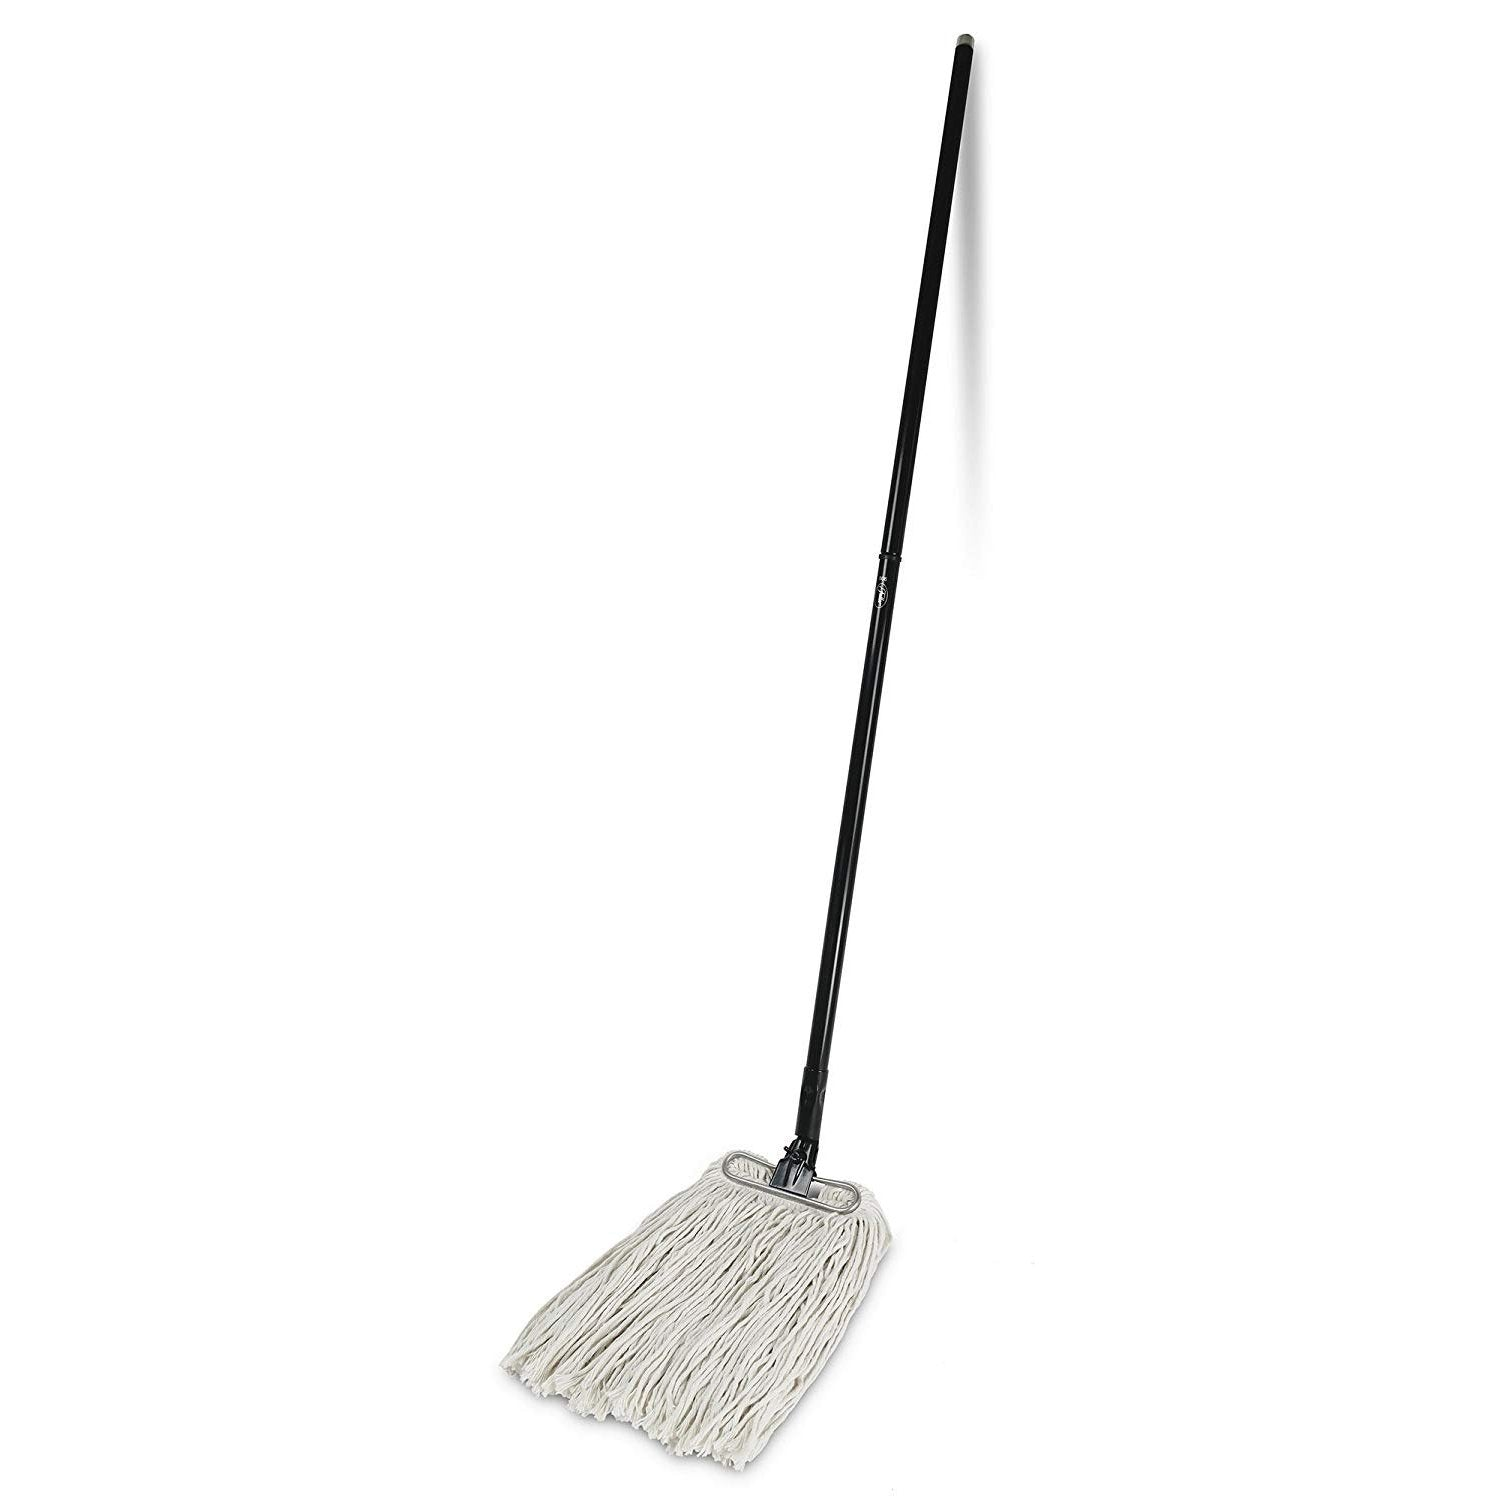 Wet Mop Jumbo With 806 Handle-Mops-Fuller Brush Company